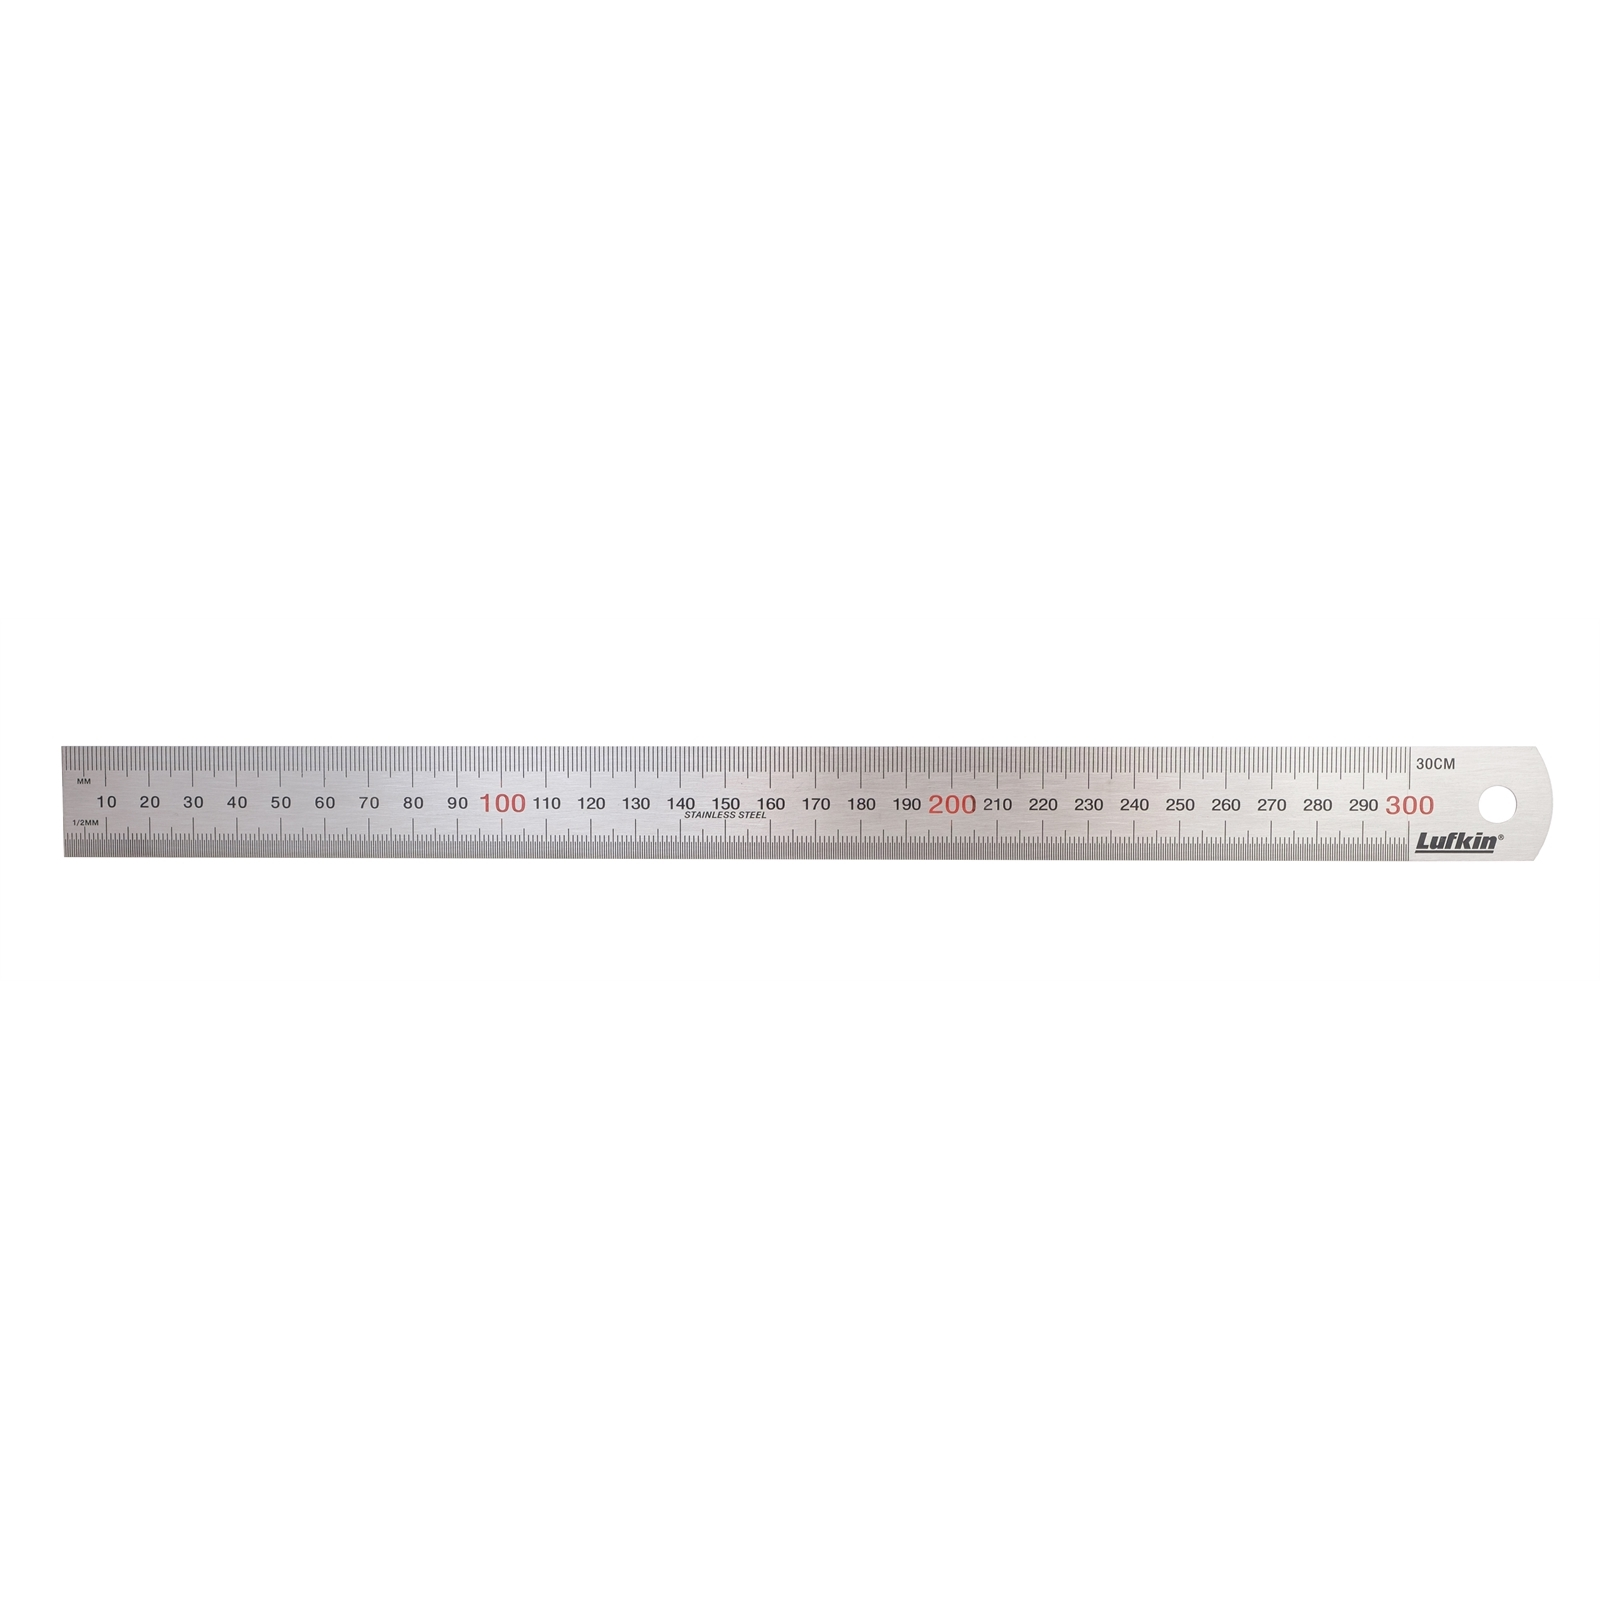 """Crescent Lufkin 300mm / 12"""" Stainless Steel Rule"""